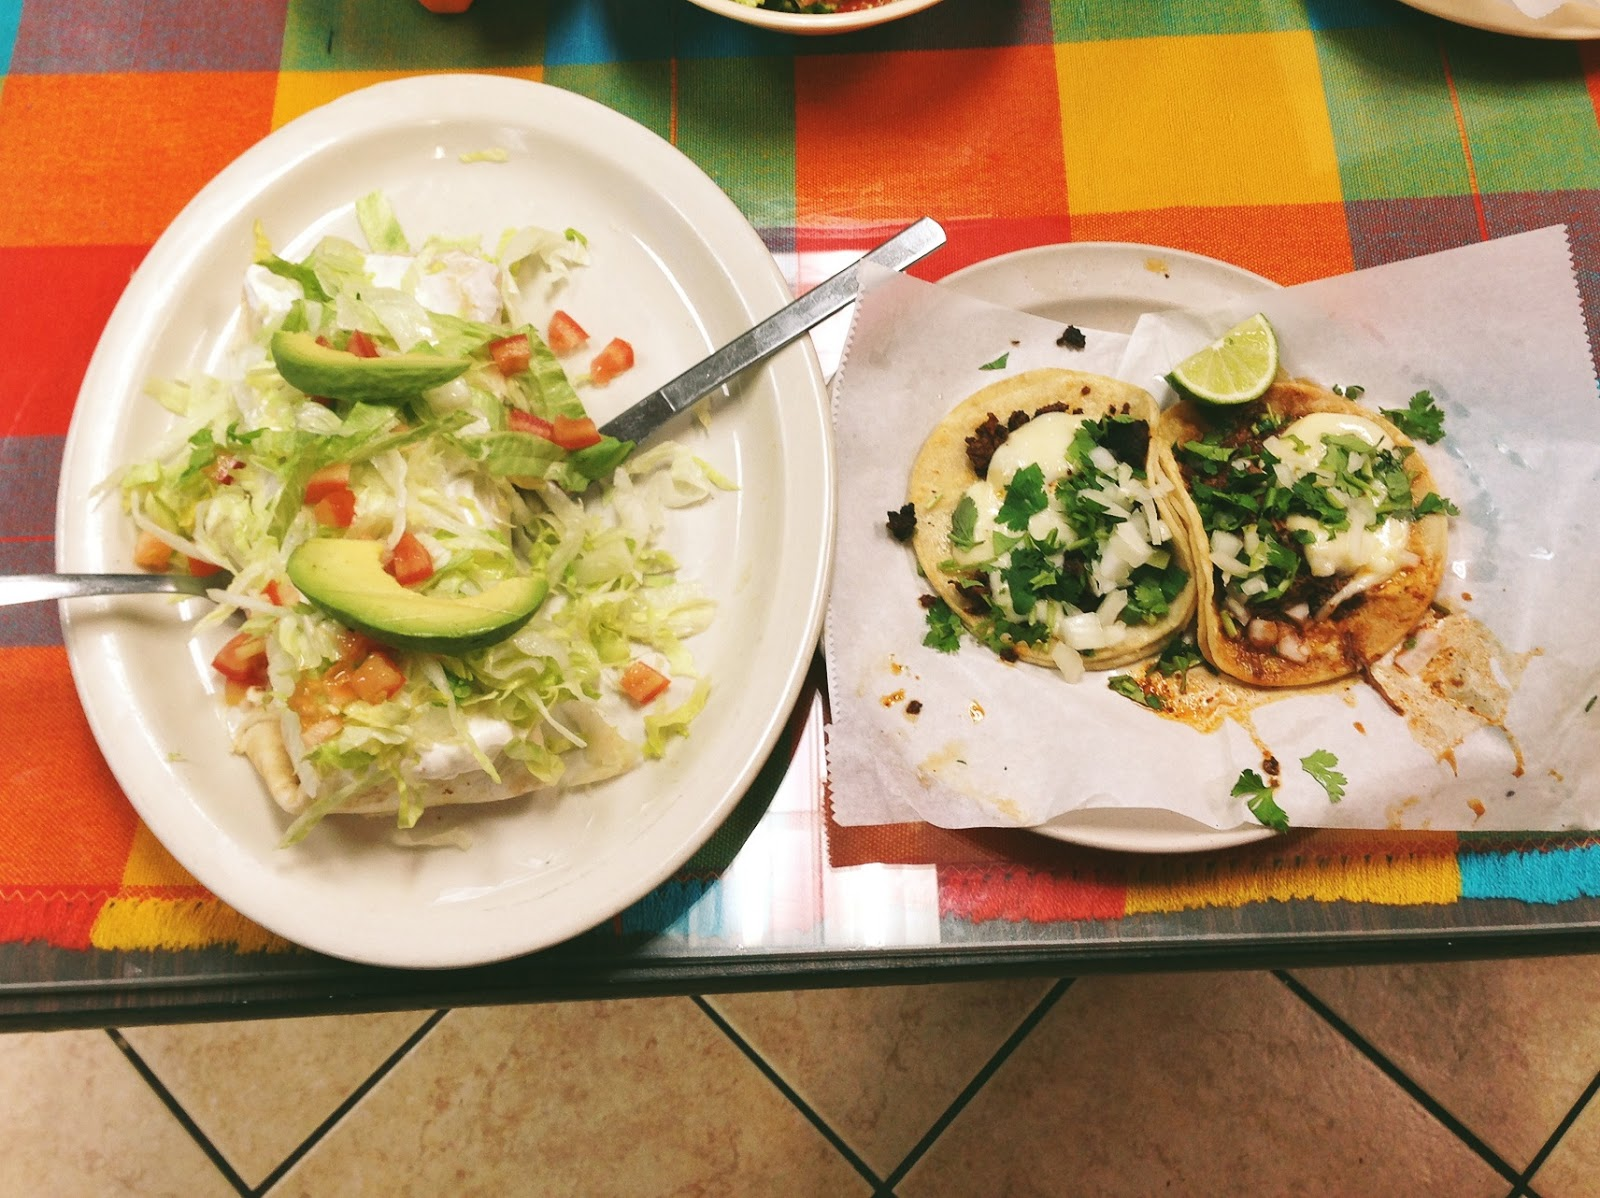 Tacos at El Jaicience Mexican restaurant in Nashville Tennessee